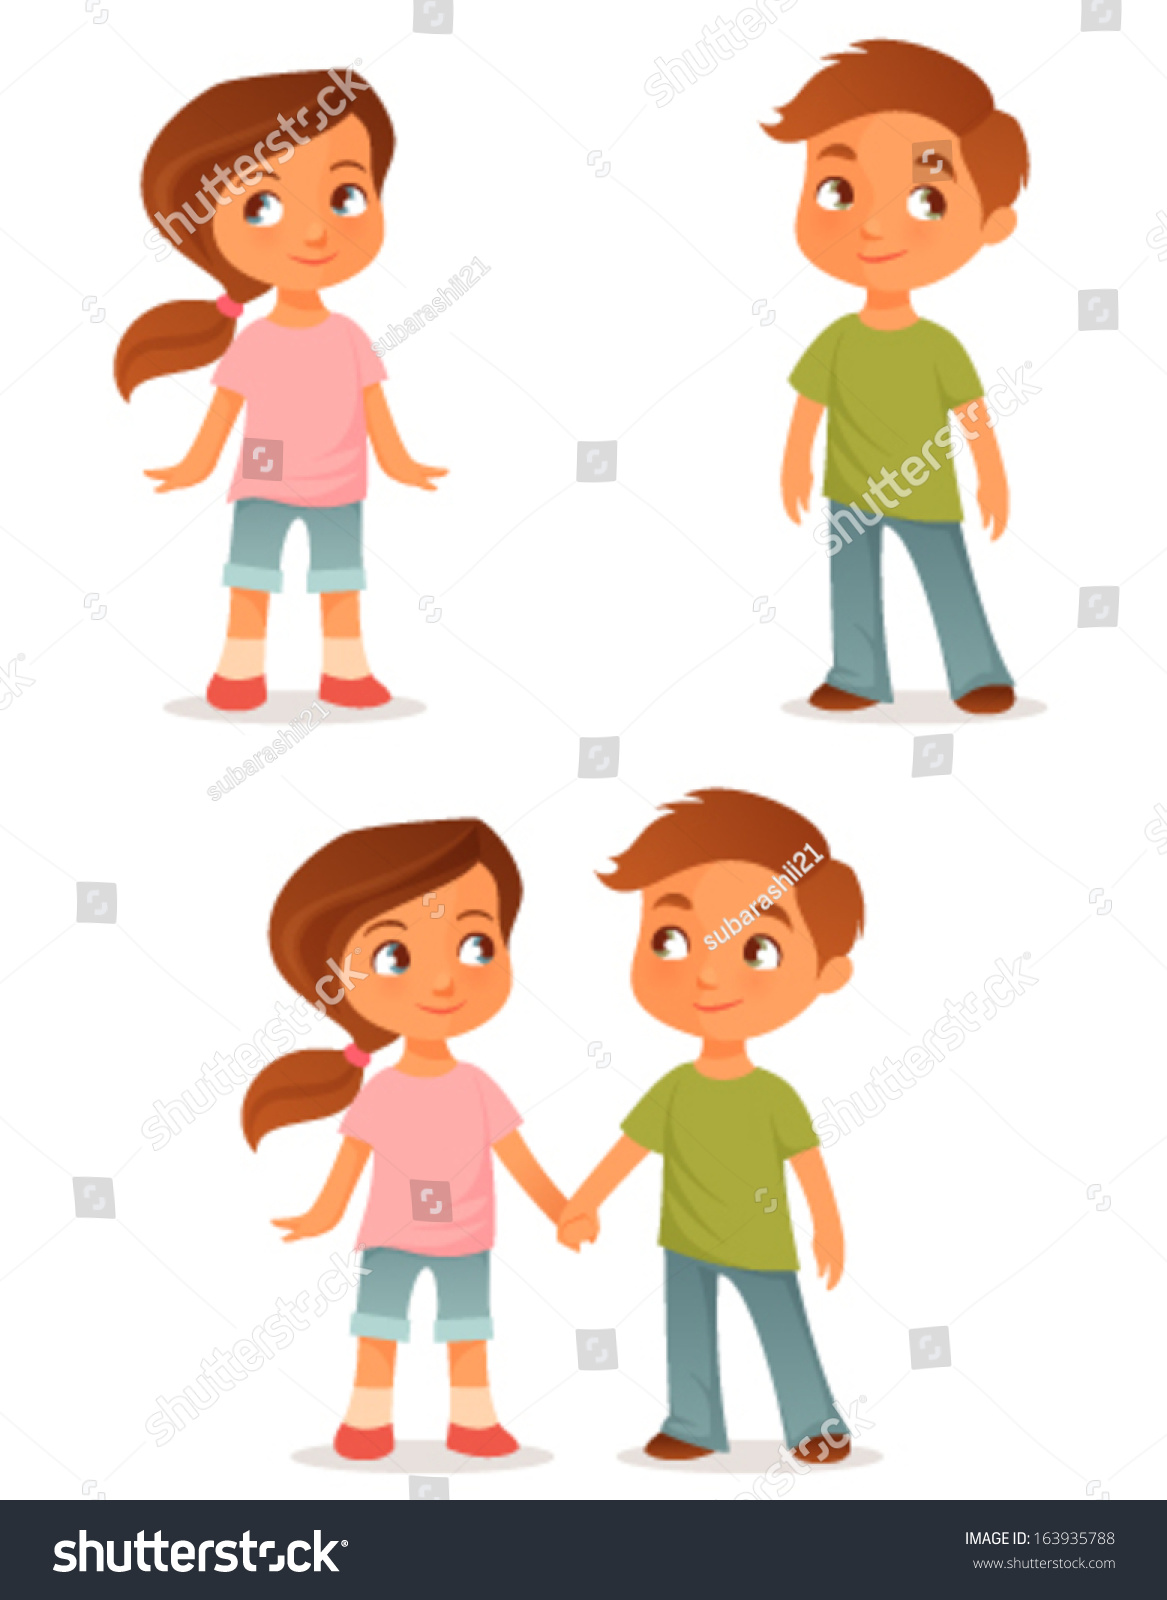 cute cartoon kids either a brother and sister or little friends holding hands